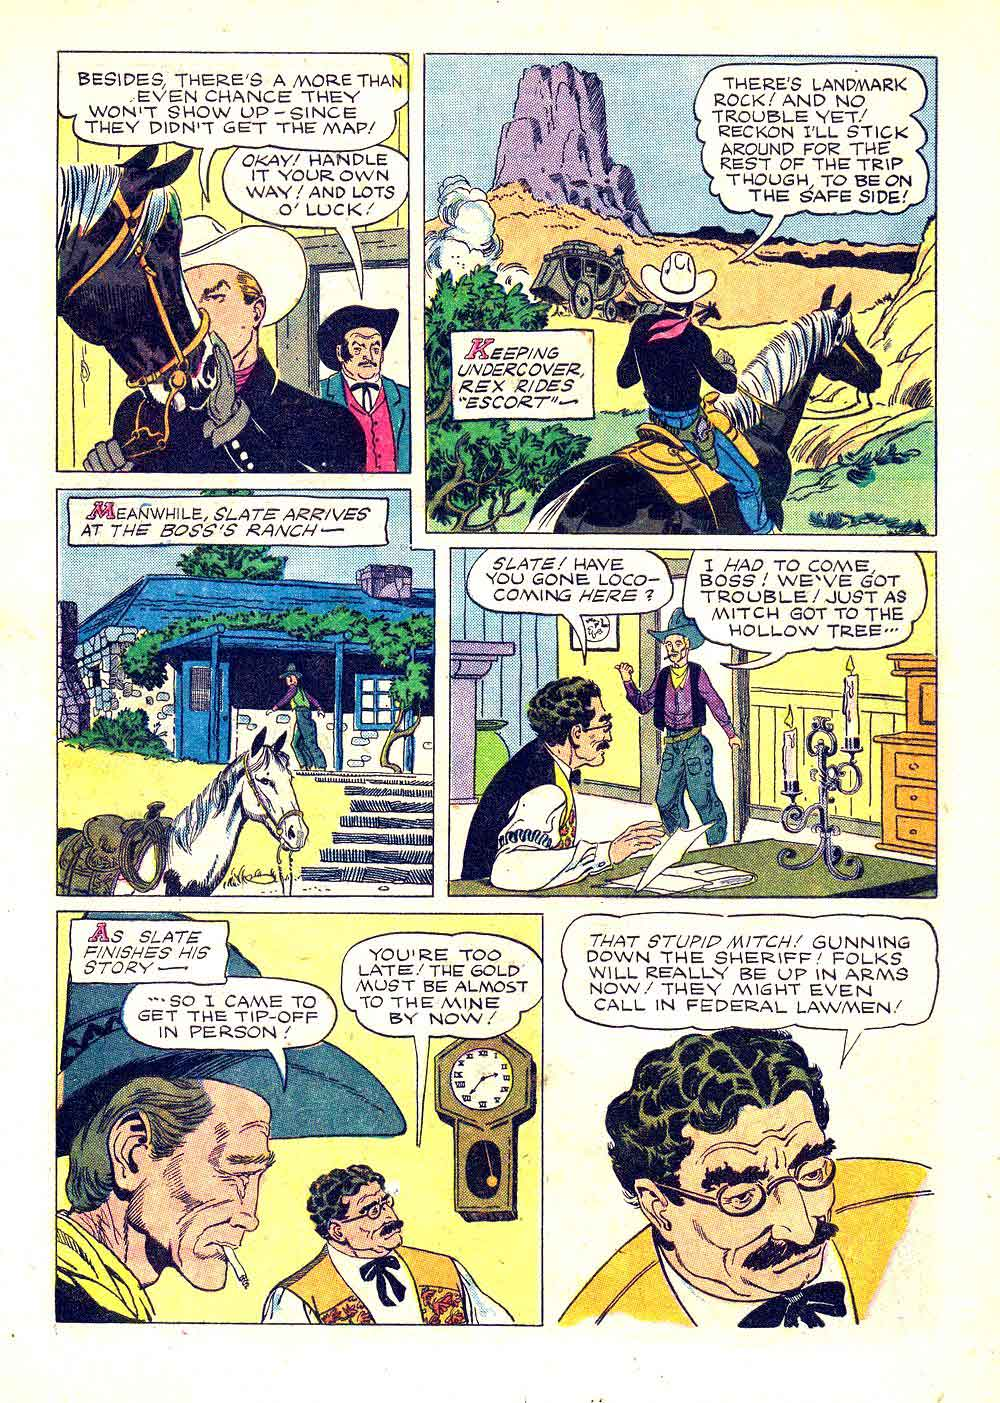 Rex Allen v1 #20 dell western comic book page art by Russ Manning